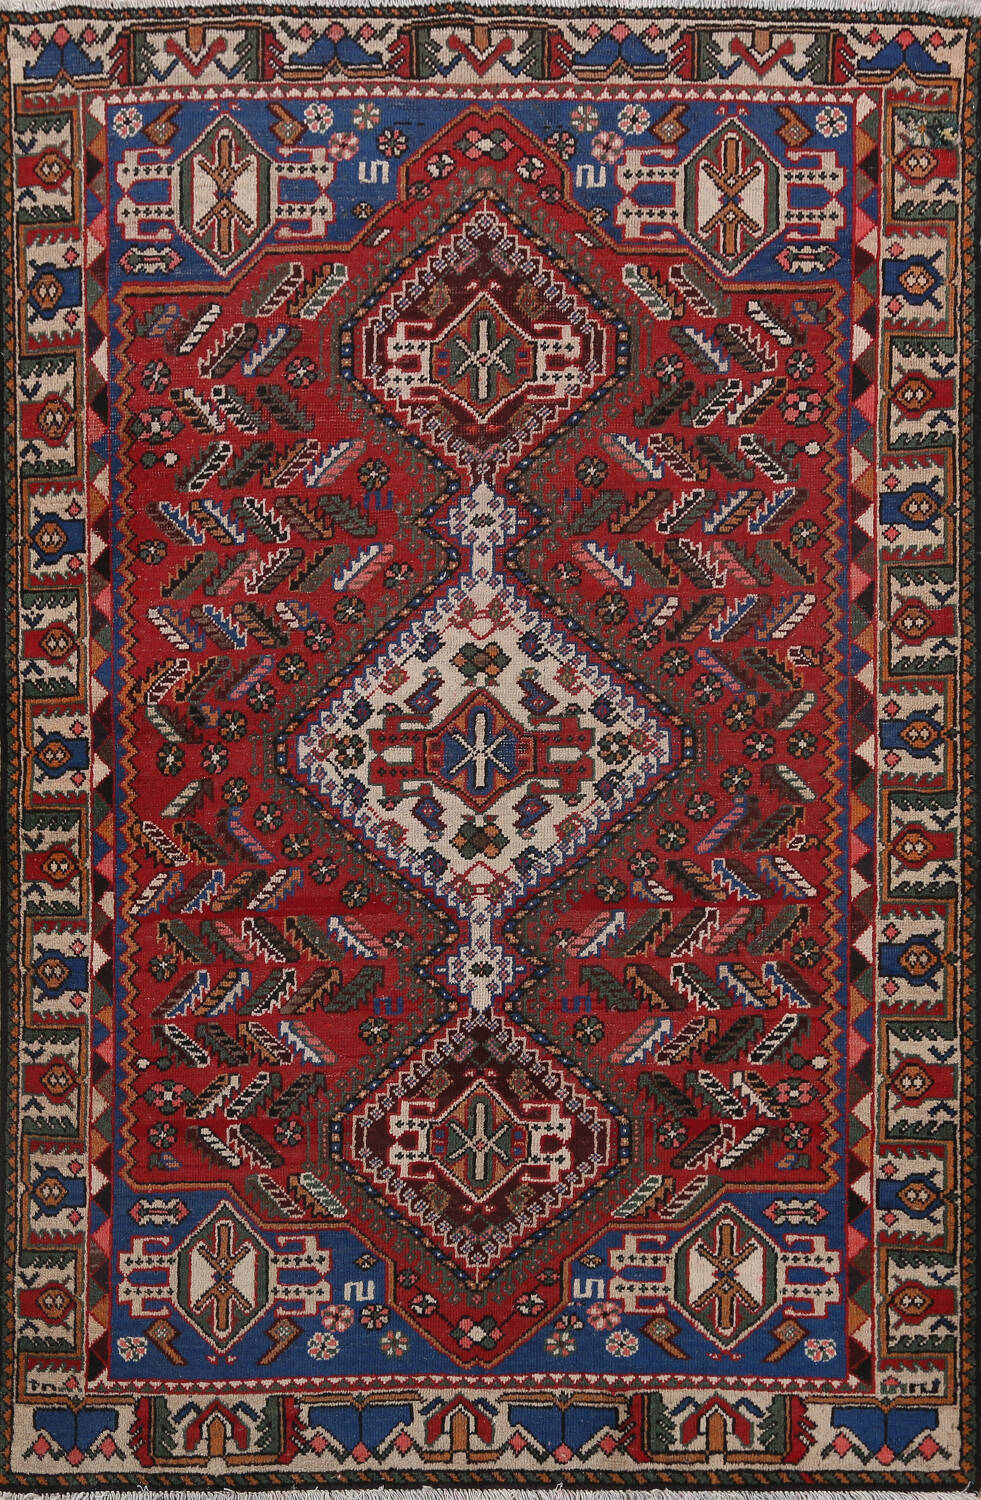 Antique Tribal Bakhtiari Persian Area Rug 5x6 image 1